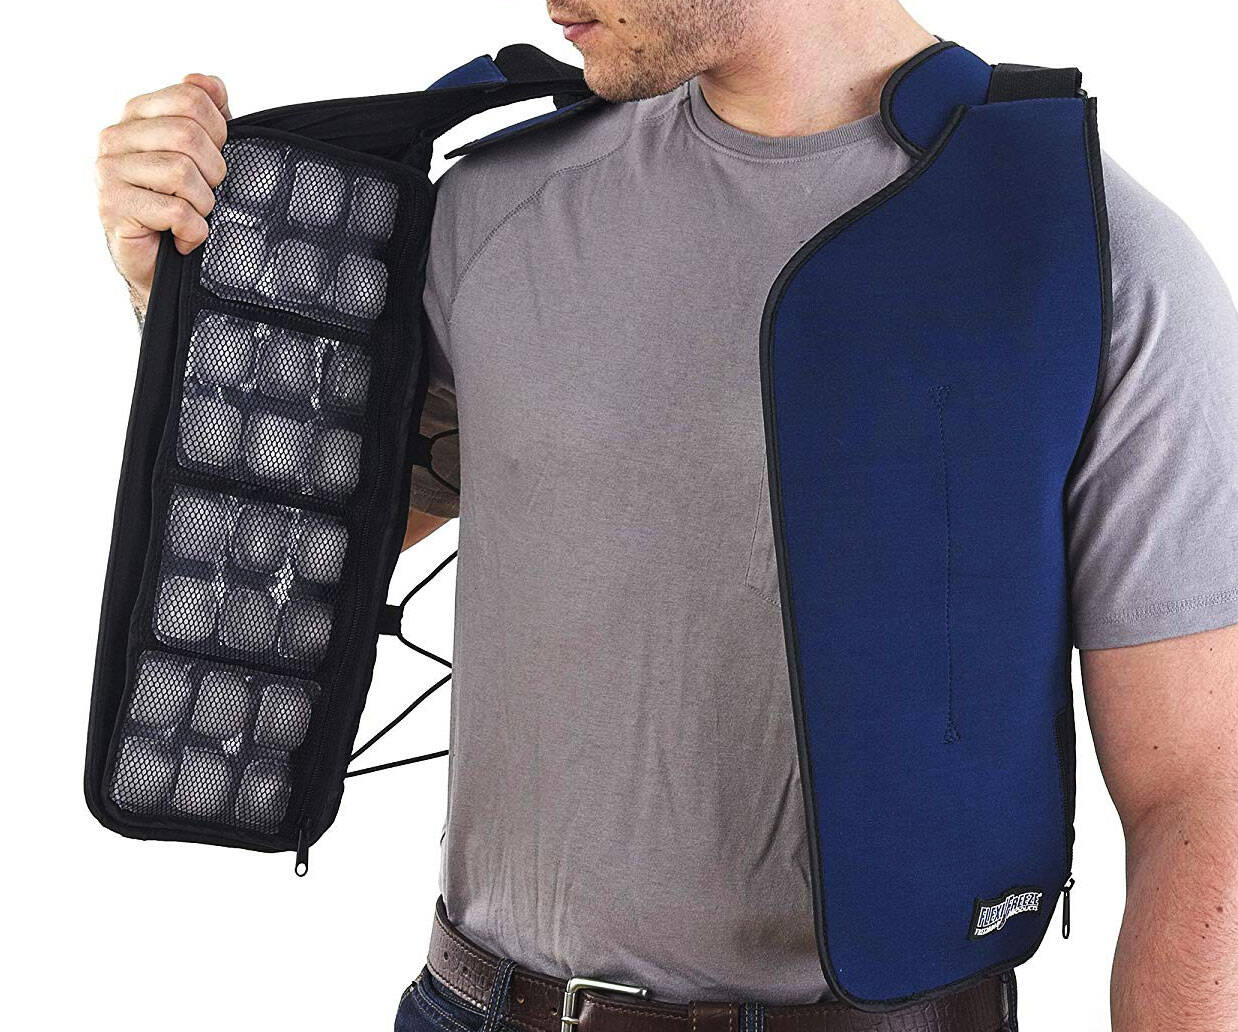 The Ice Vest - http://coolthings.us